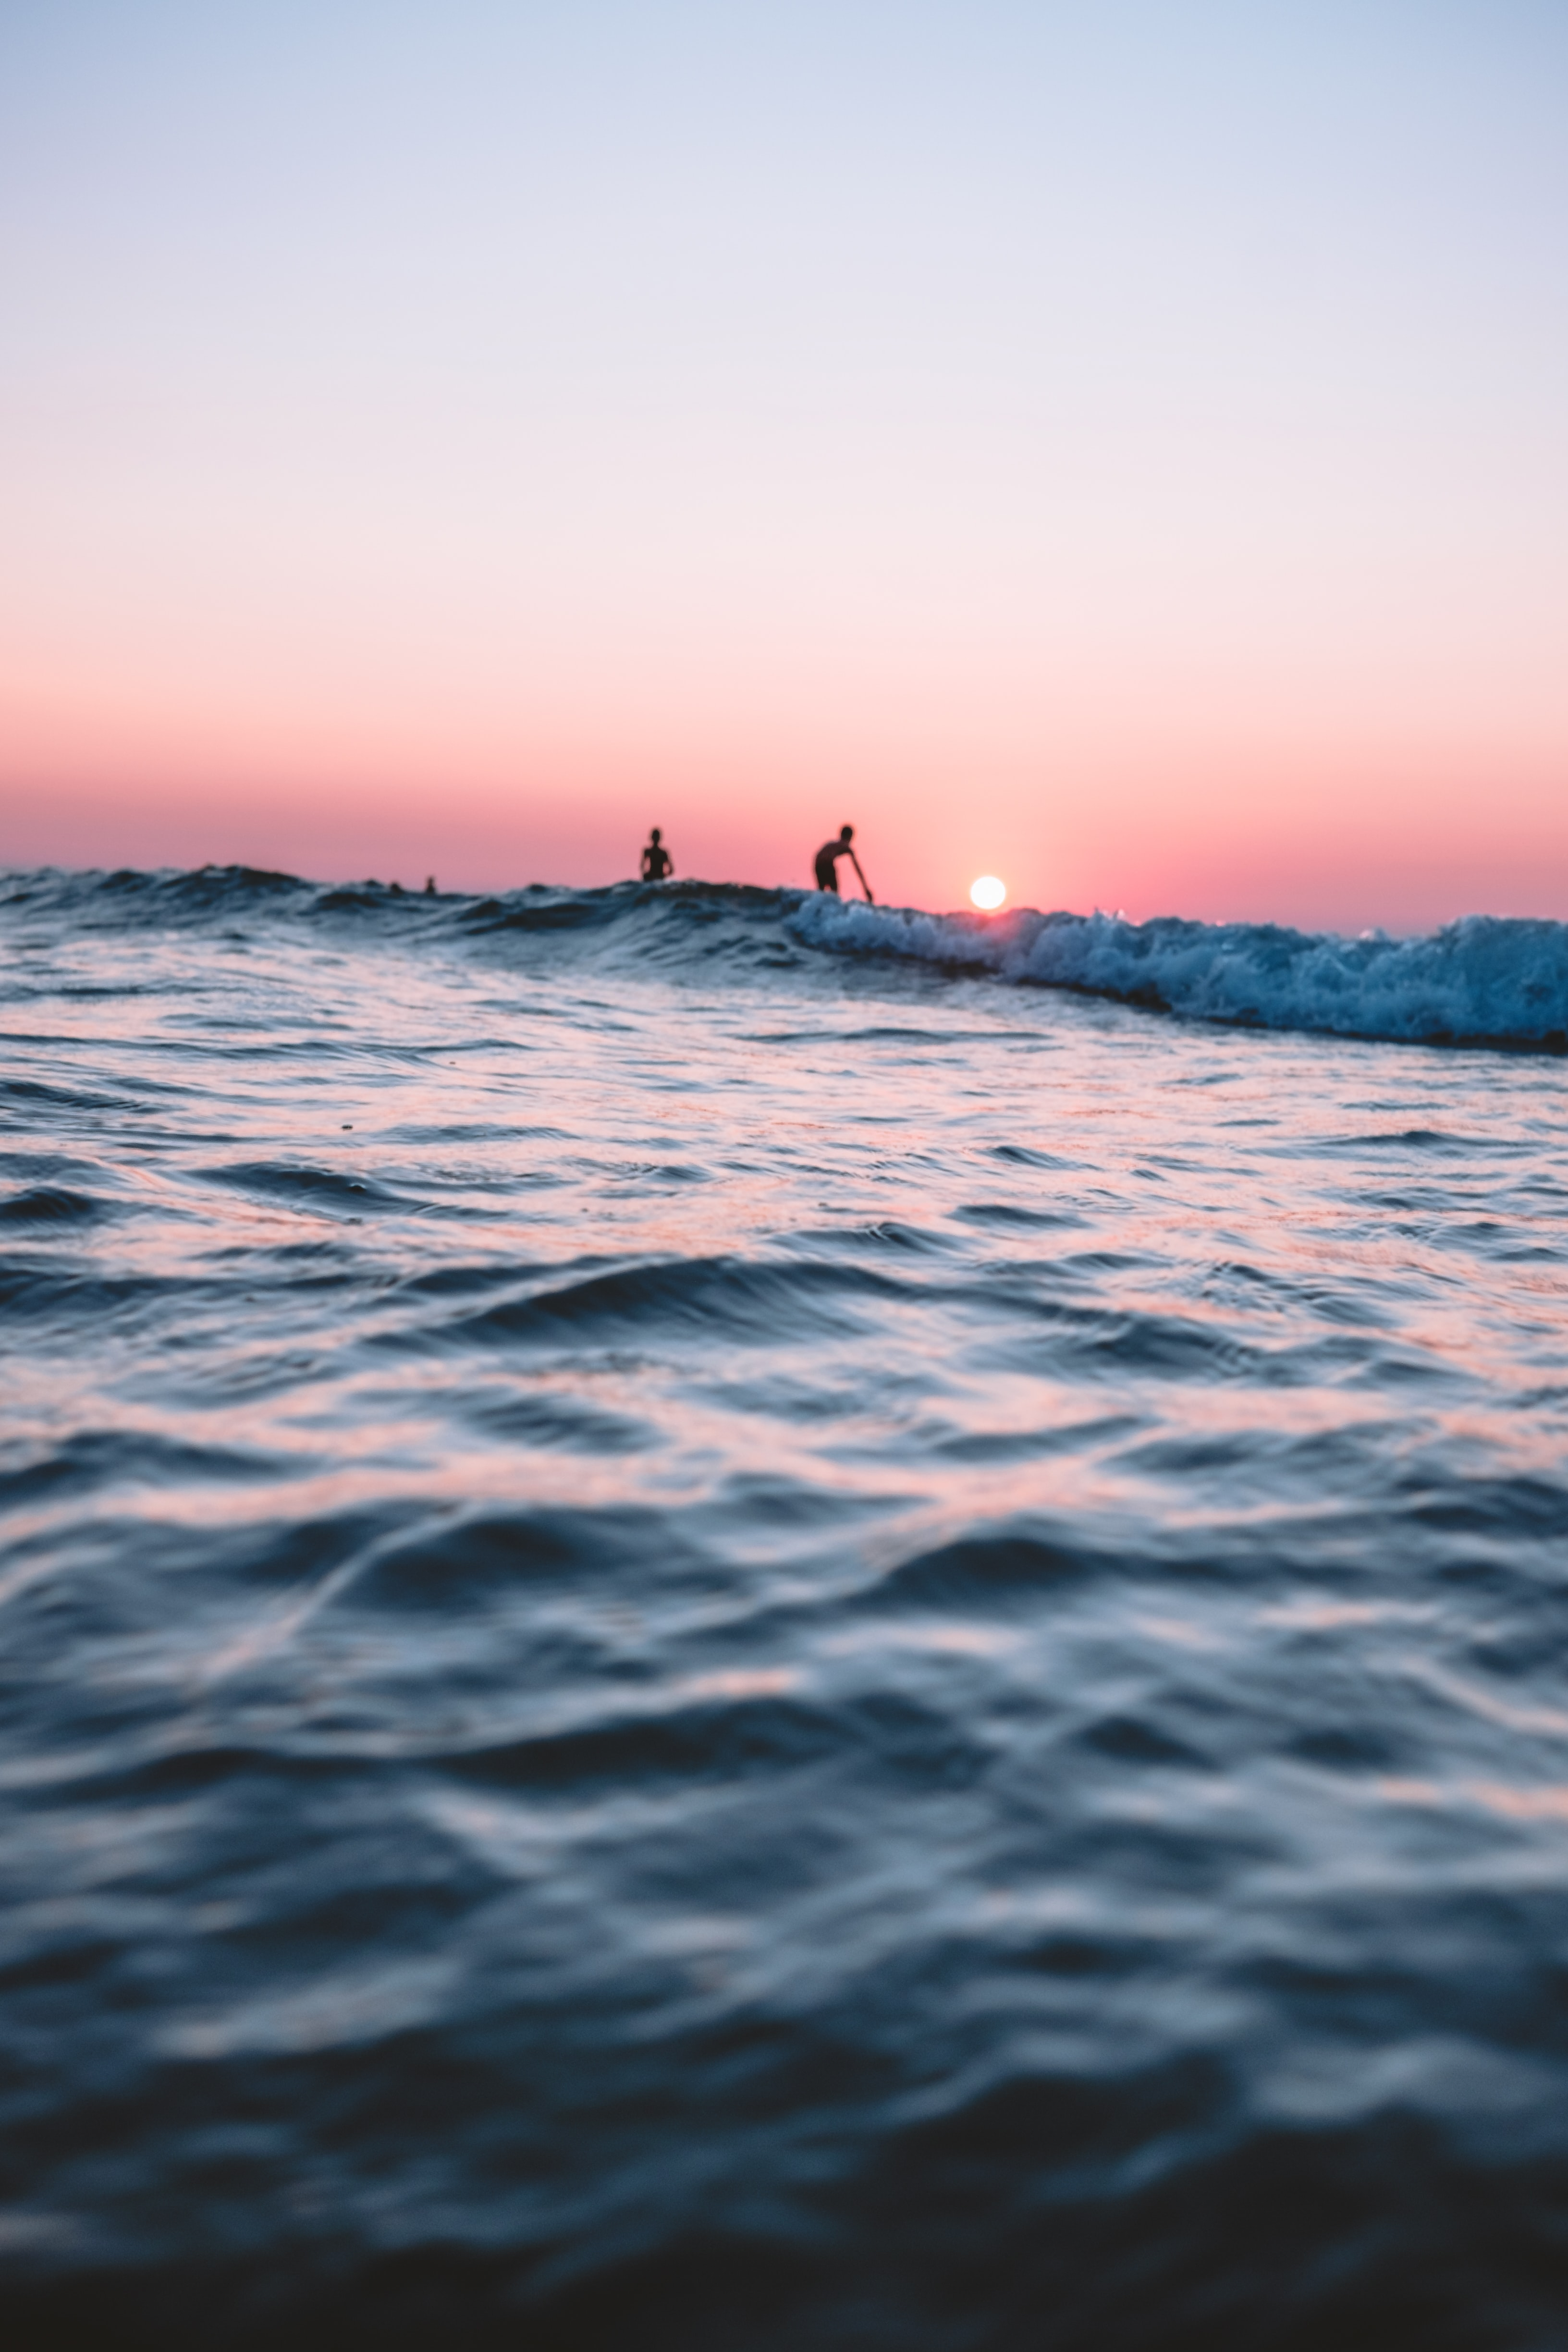 silhouette of people surfing during sunset